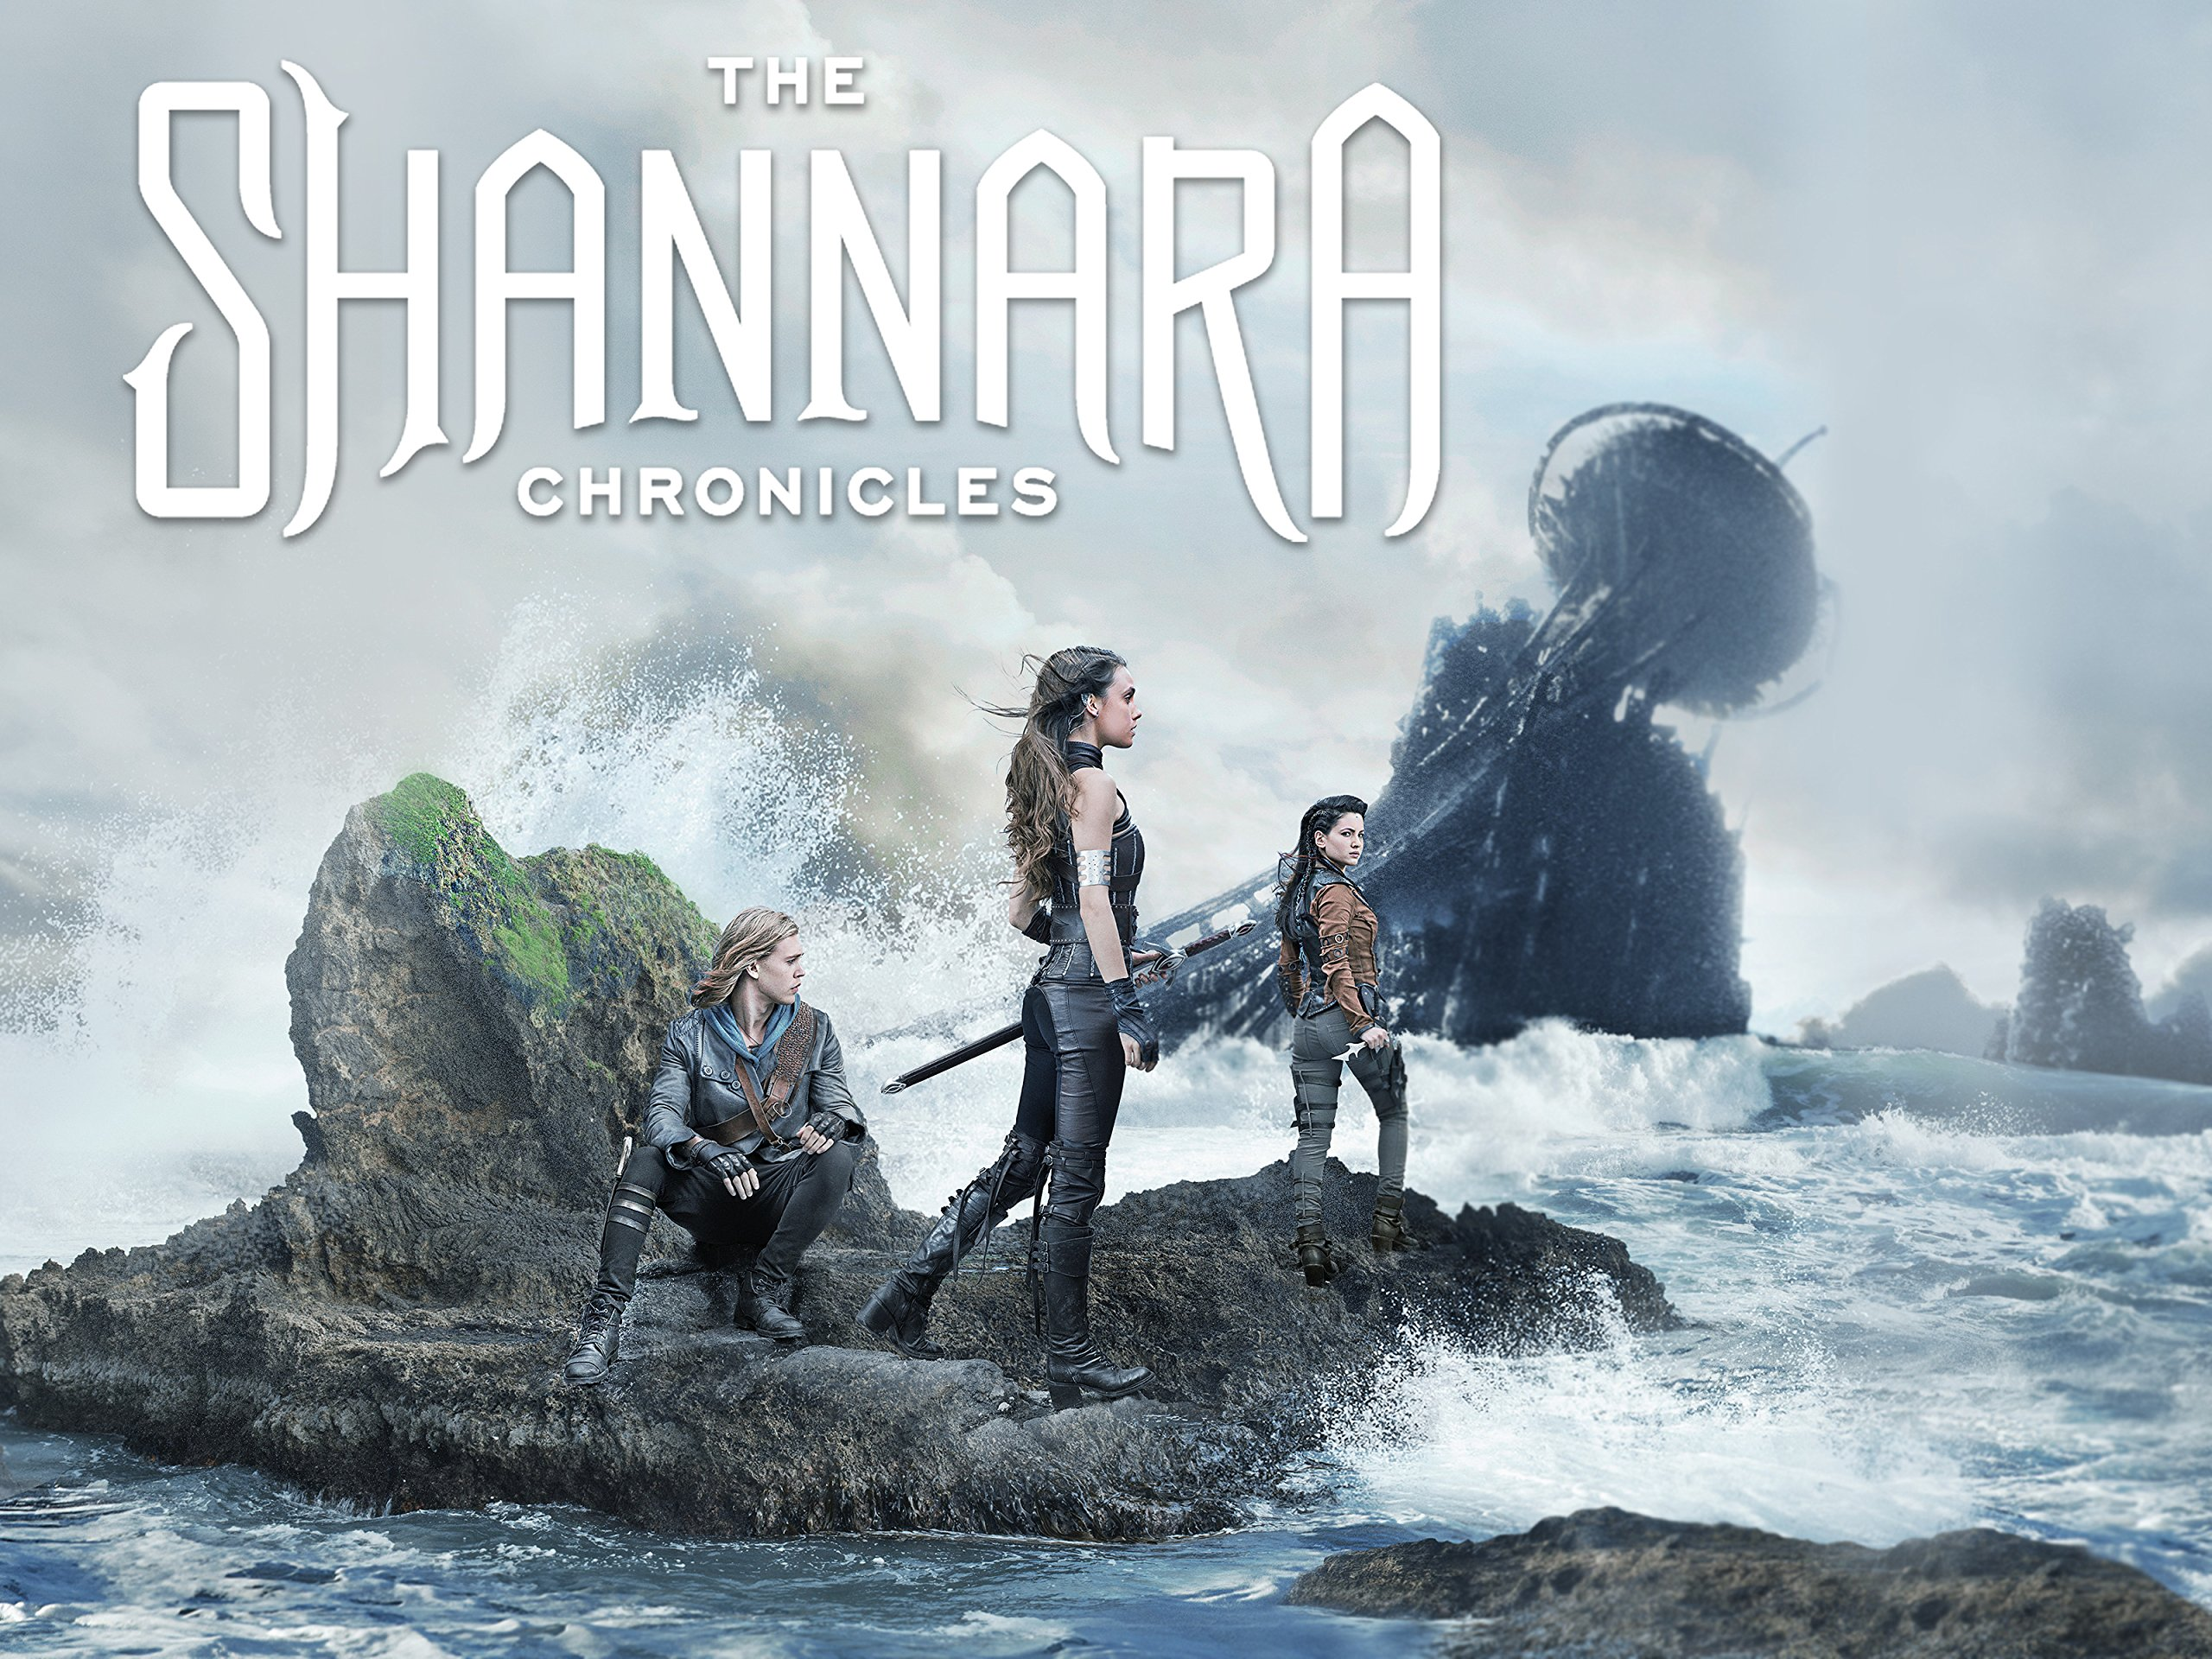 the shannara chronicles season 2 episode 6 subtitles